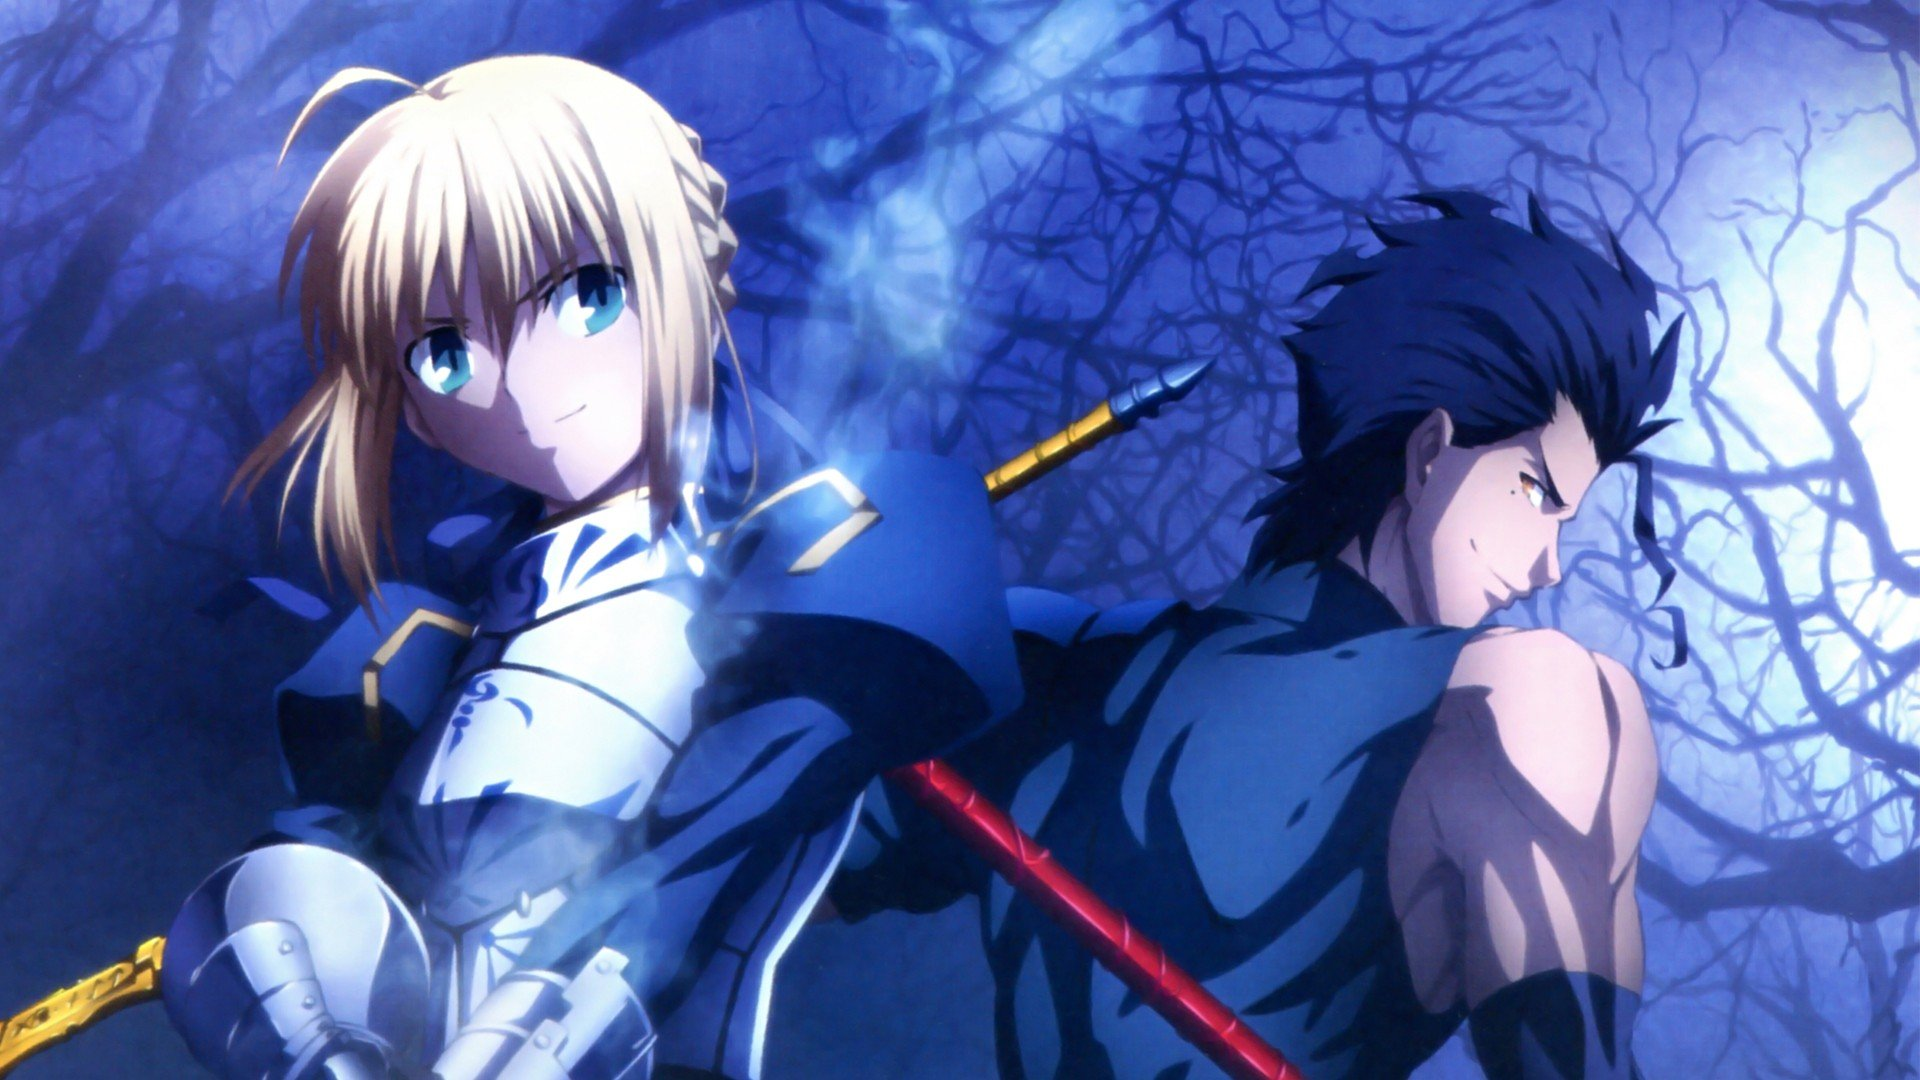 Saber FateZero Lancer FateZero Fate series wallpaper background 1920x1080